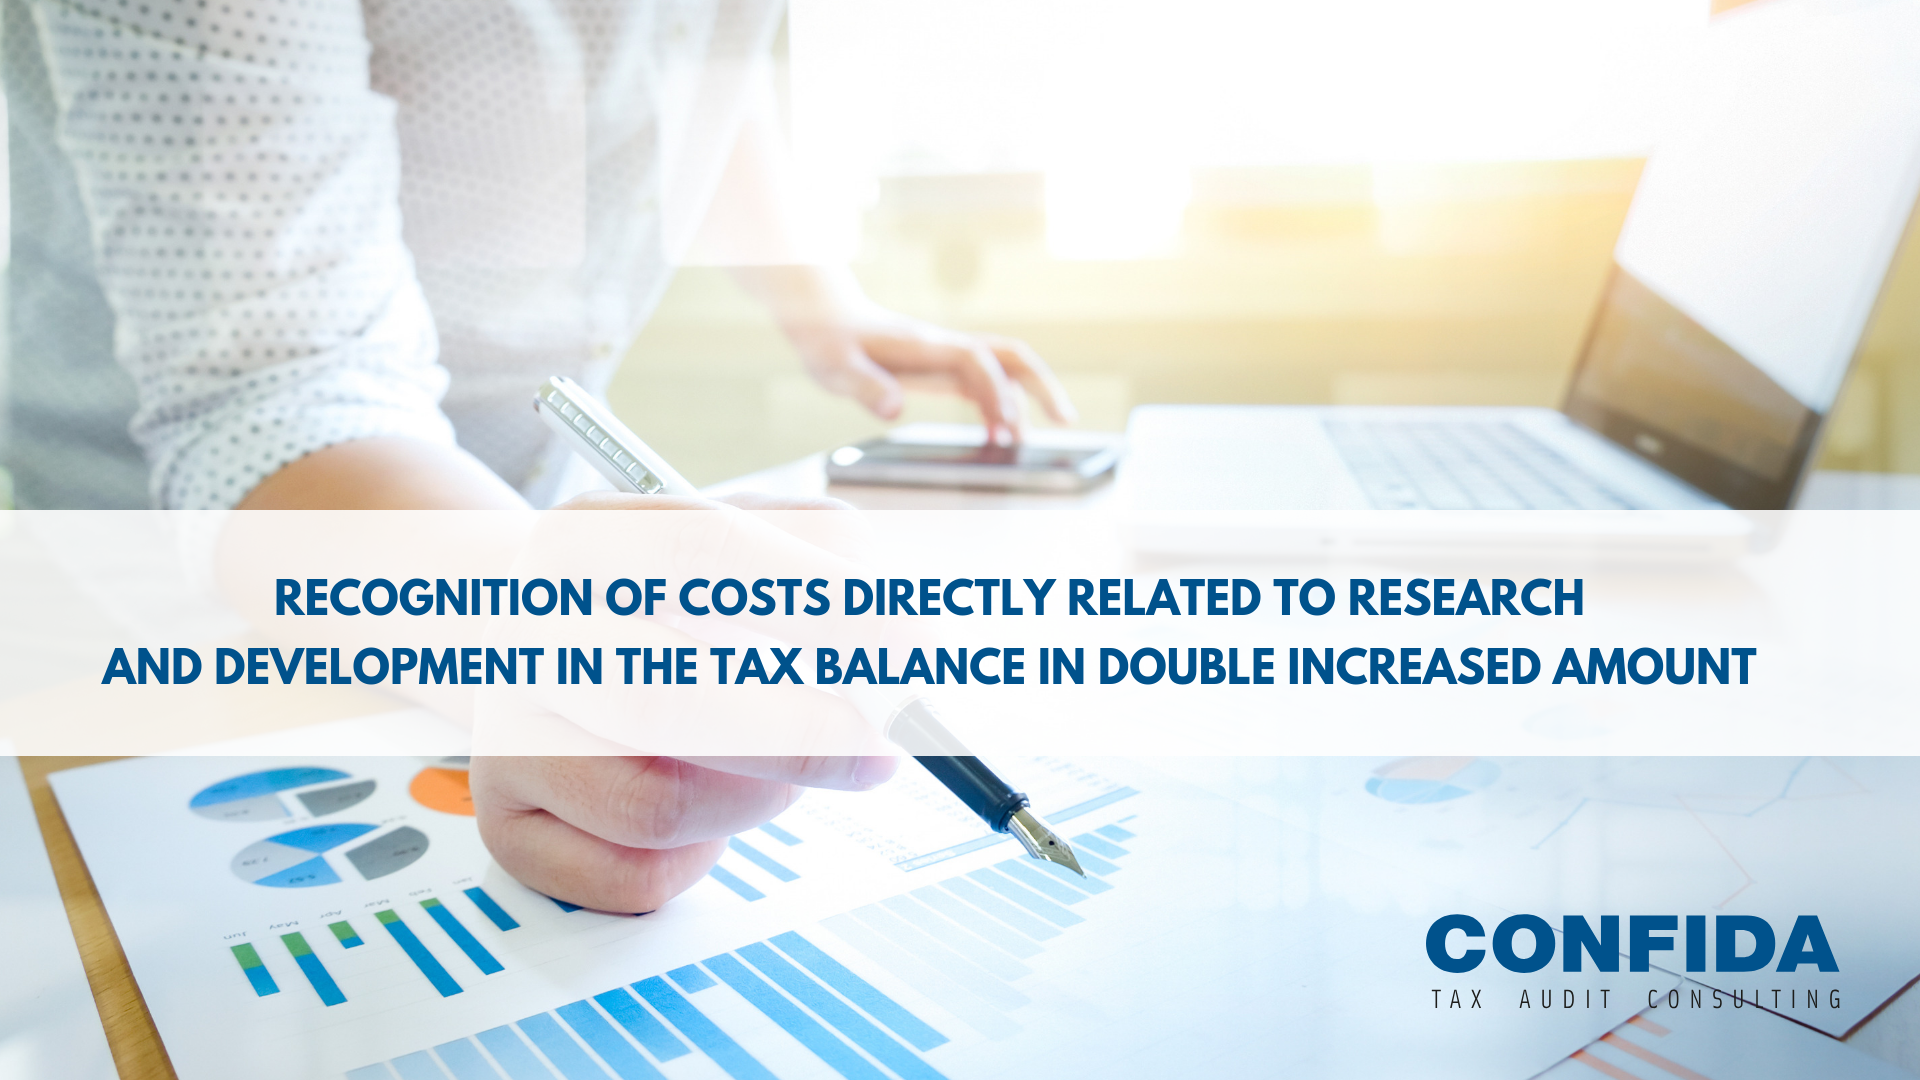 The Rulebook on conditions and method of exercising the right to recognition of costs directly related to research and development in the tax balance in double increased amount